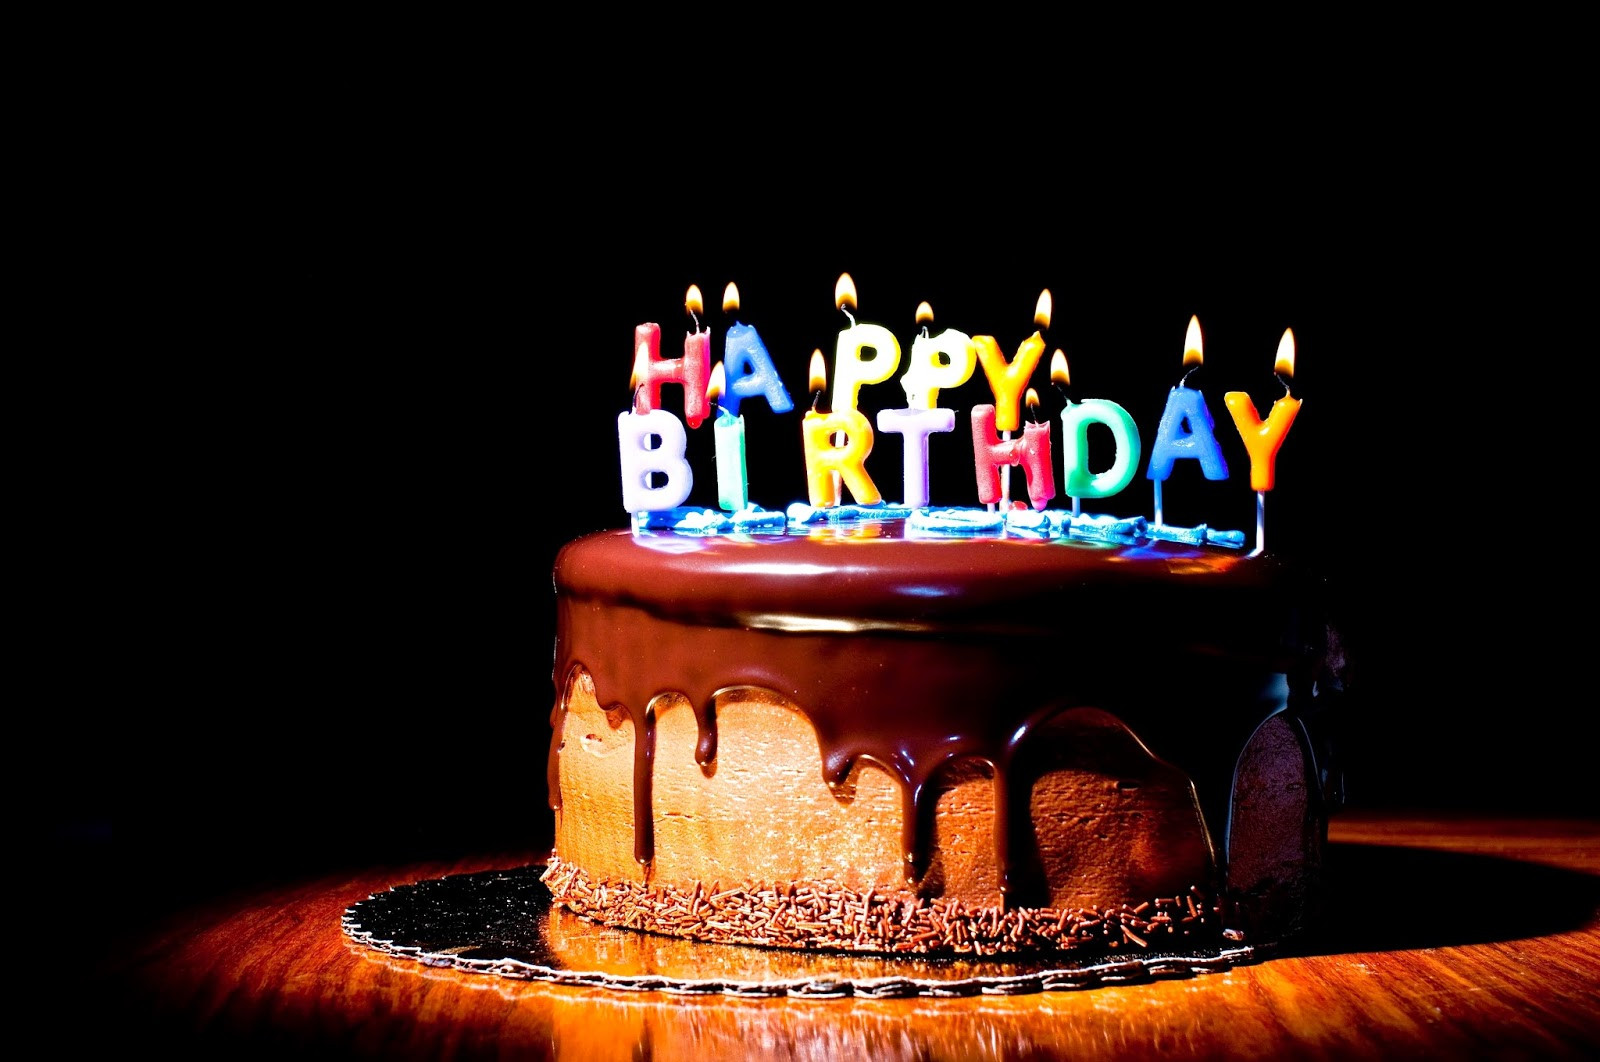 Best ideas about Birthday Wishes Cake . Save or Pin Birthday Wishes Now.